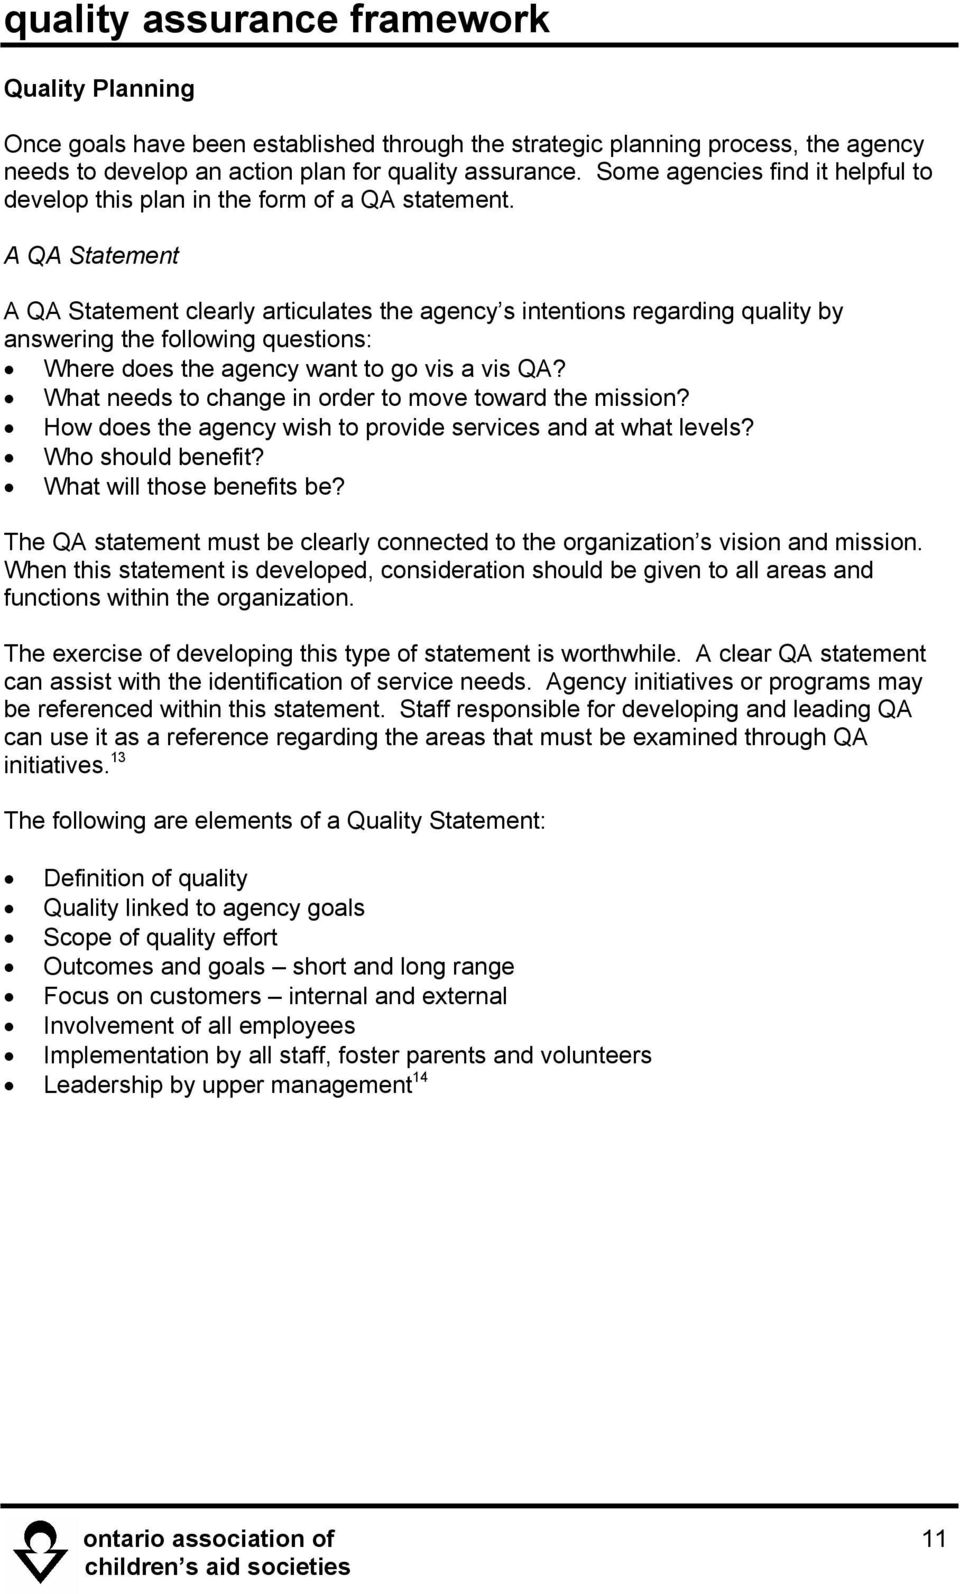 A QA Statement A QA Statement clearly articulates the agency s intentions regarding quality by answering the following questions: Where does the agency want to go vis a vis QA?